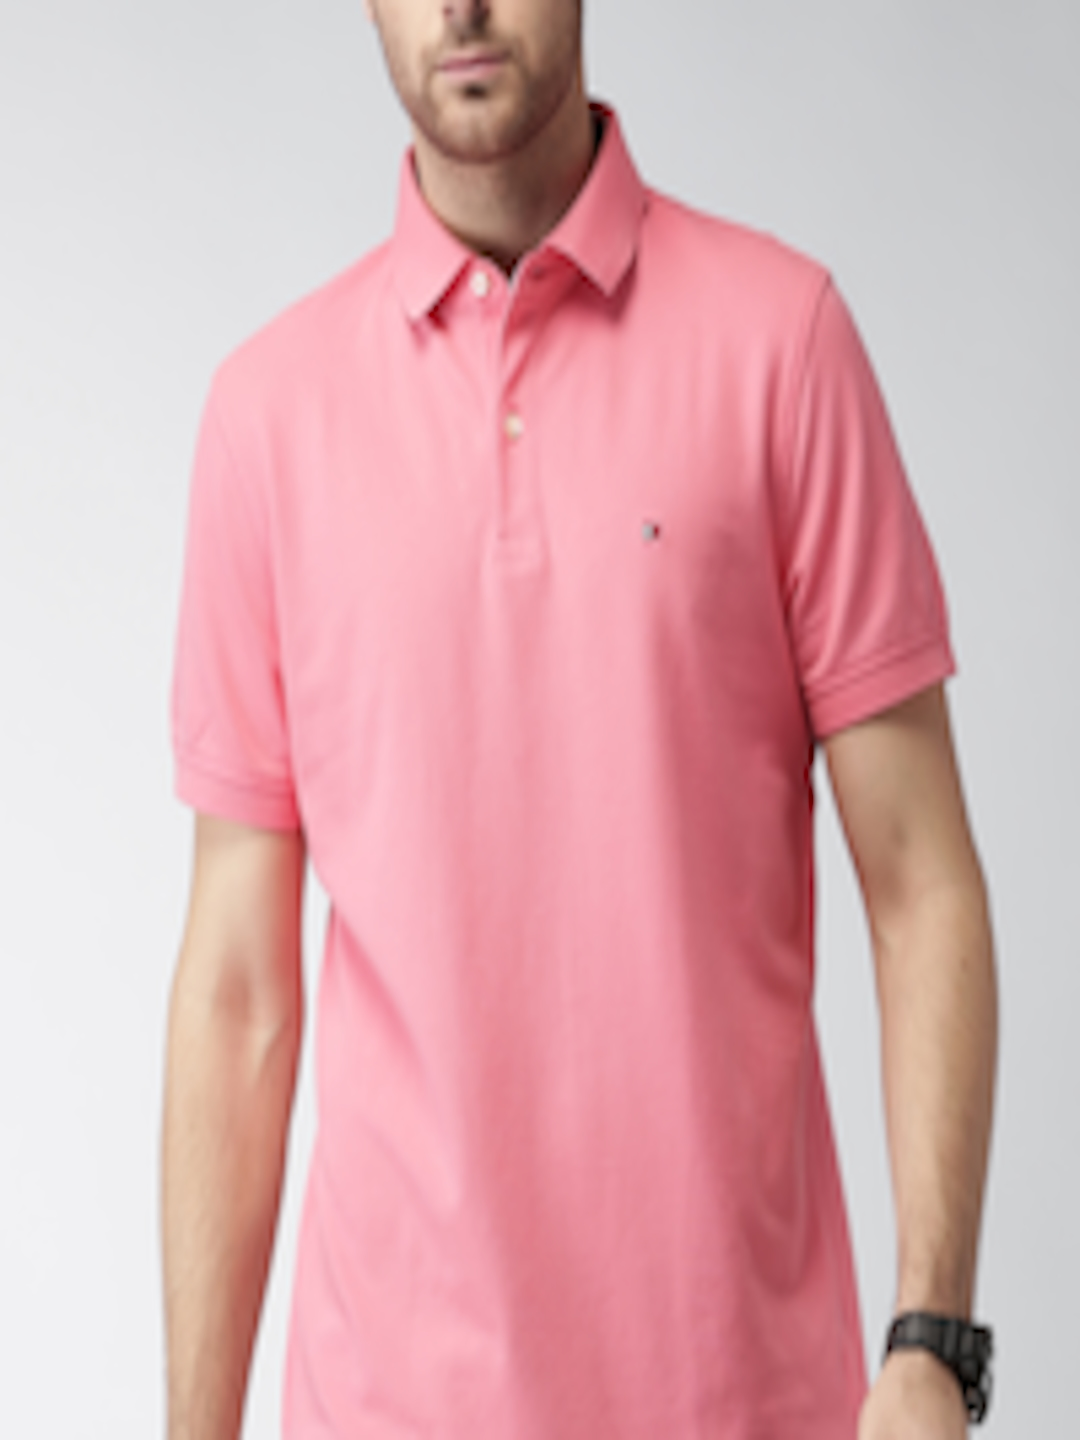 Buy Tommy Hilfiger Men Pink Solid Polo T Shirt - Tshirts ...